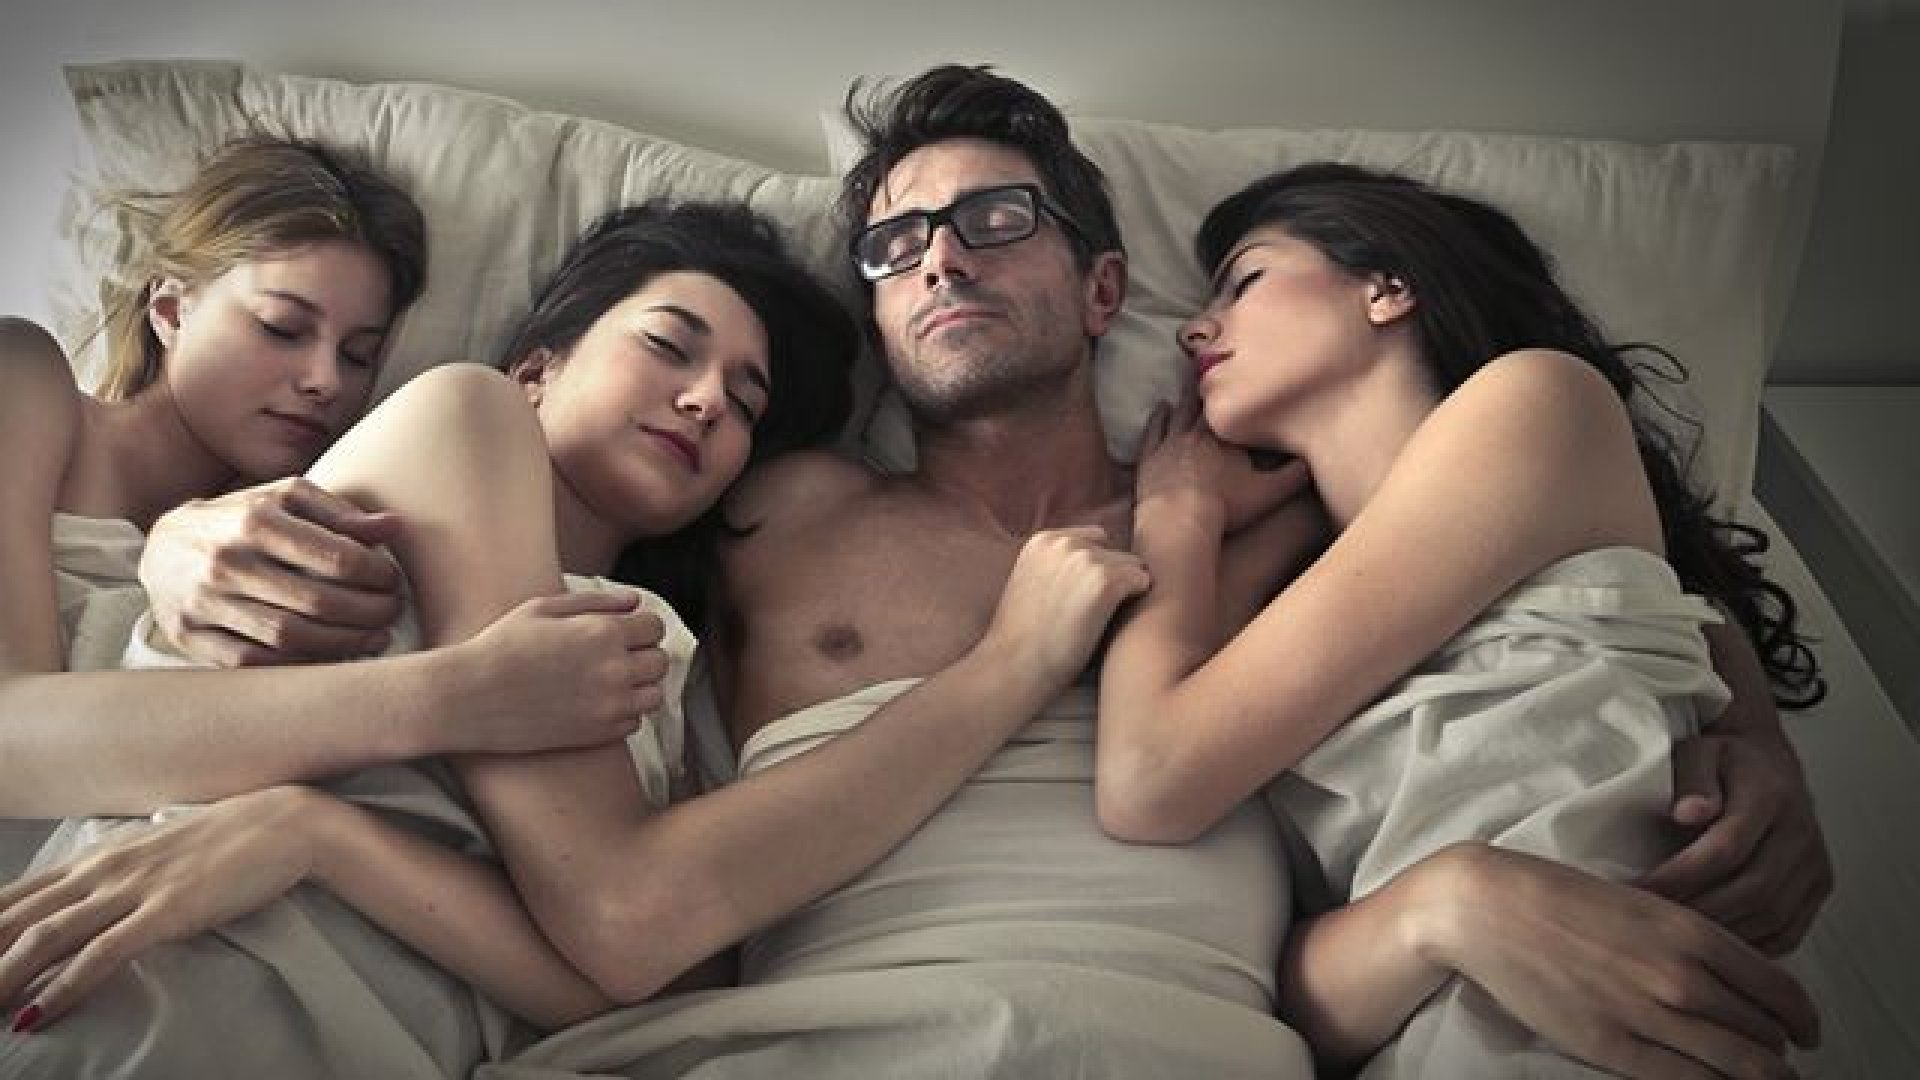 Women having threesome with women #11